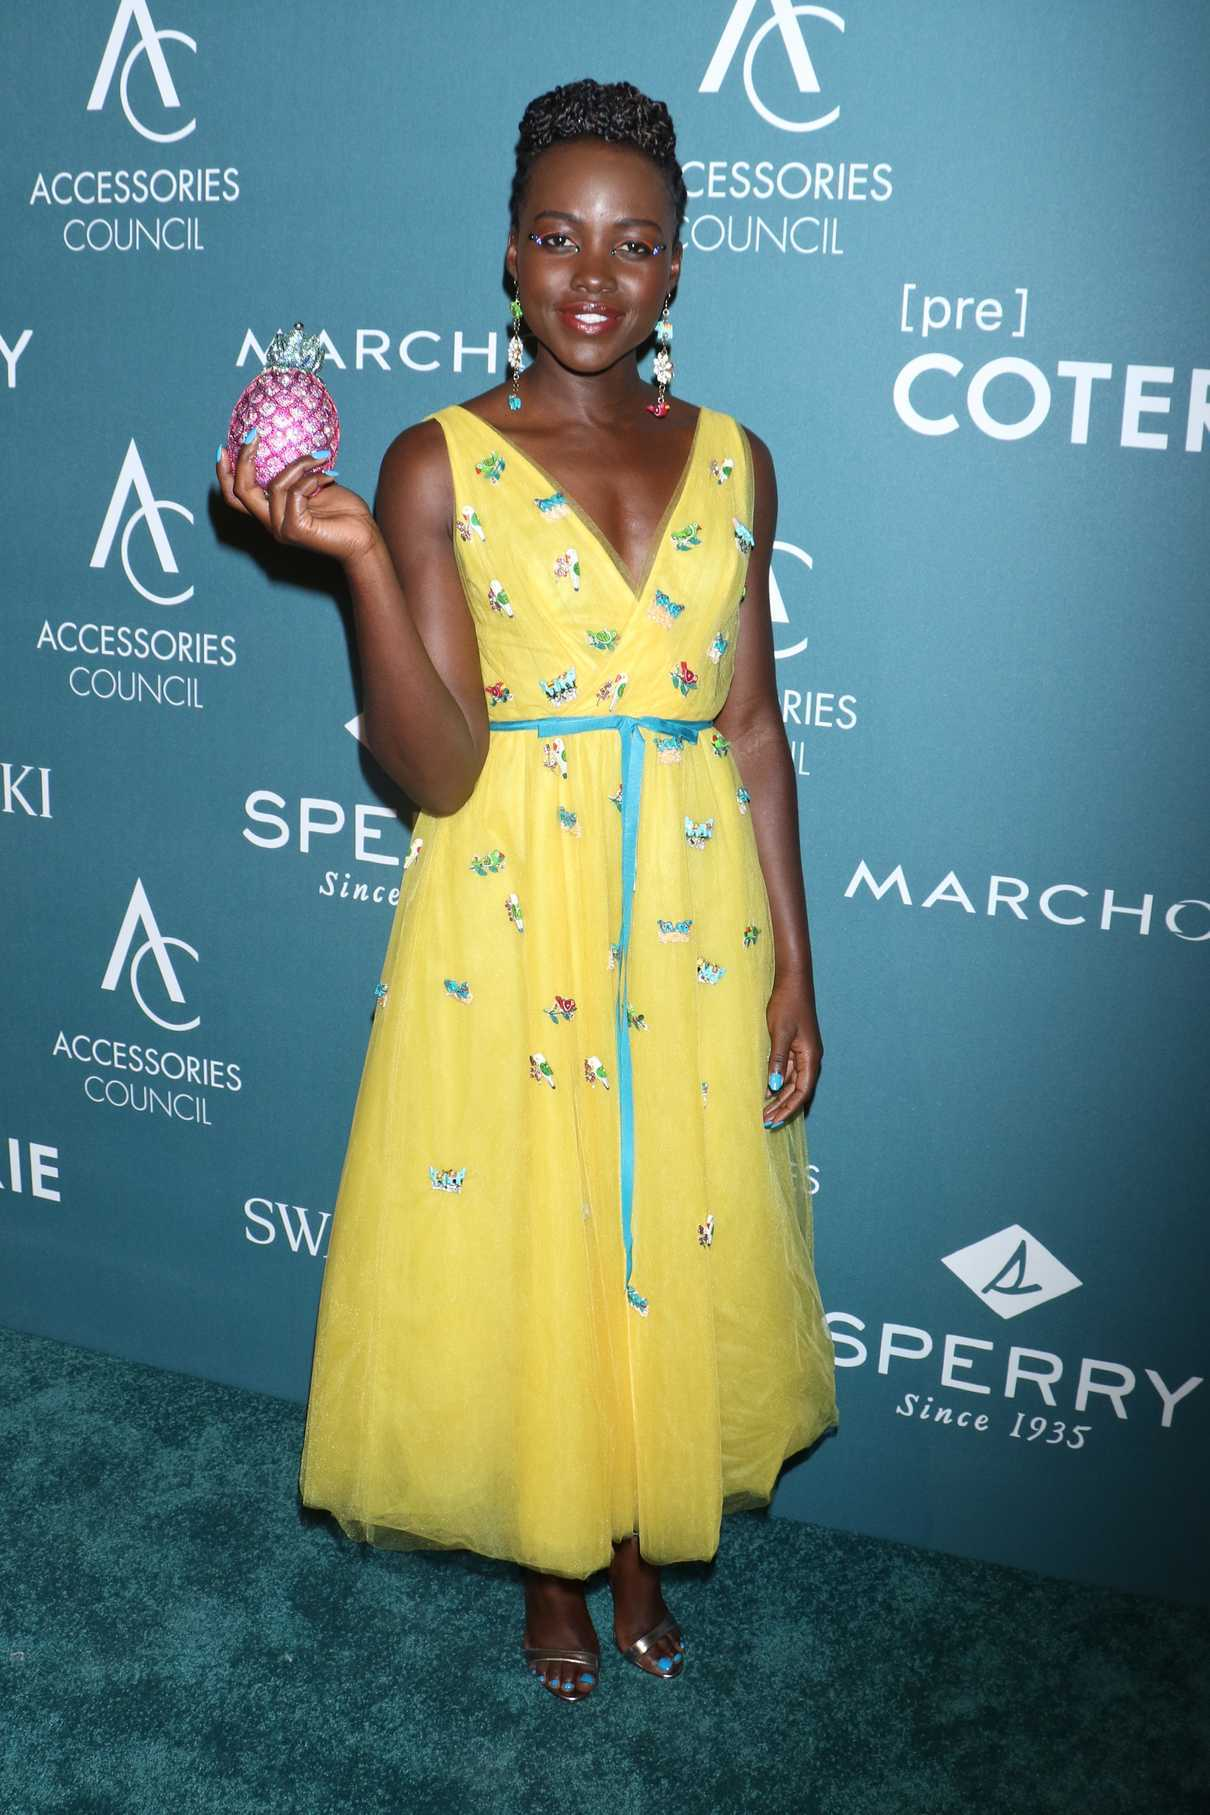 Lupita Nyong'o Attends the 22nd Annual Ace Awards in New York City 06/11/2018-3